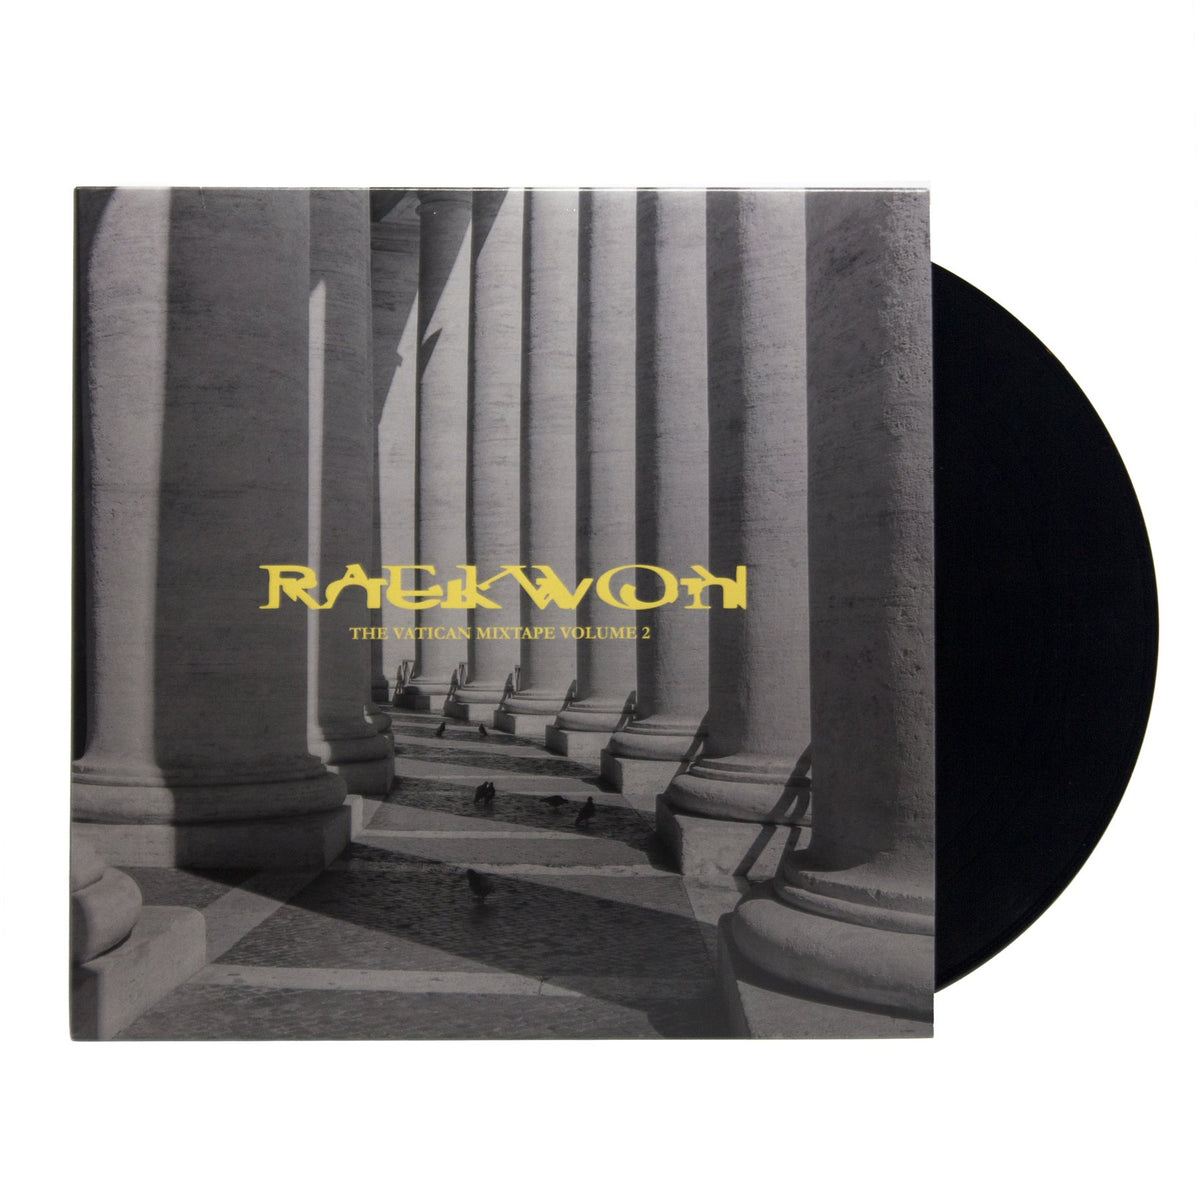 Raekwon: The Vatican Mixtape Vol.2 Vinyl 2LP (Record Store Day)